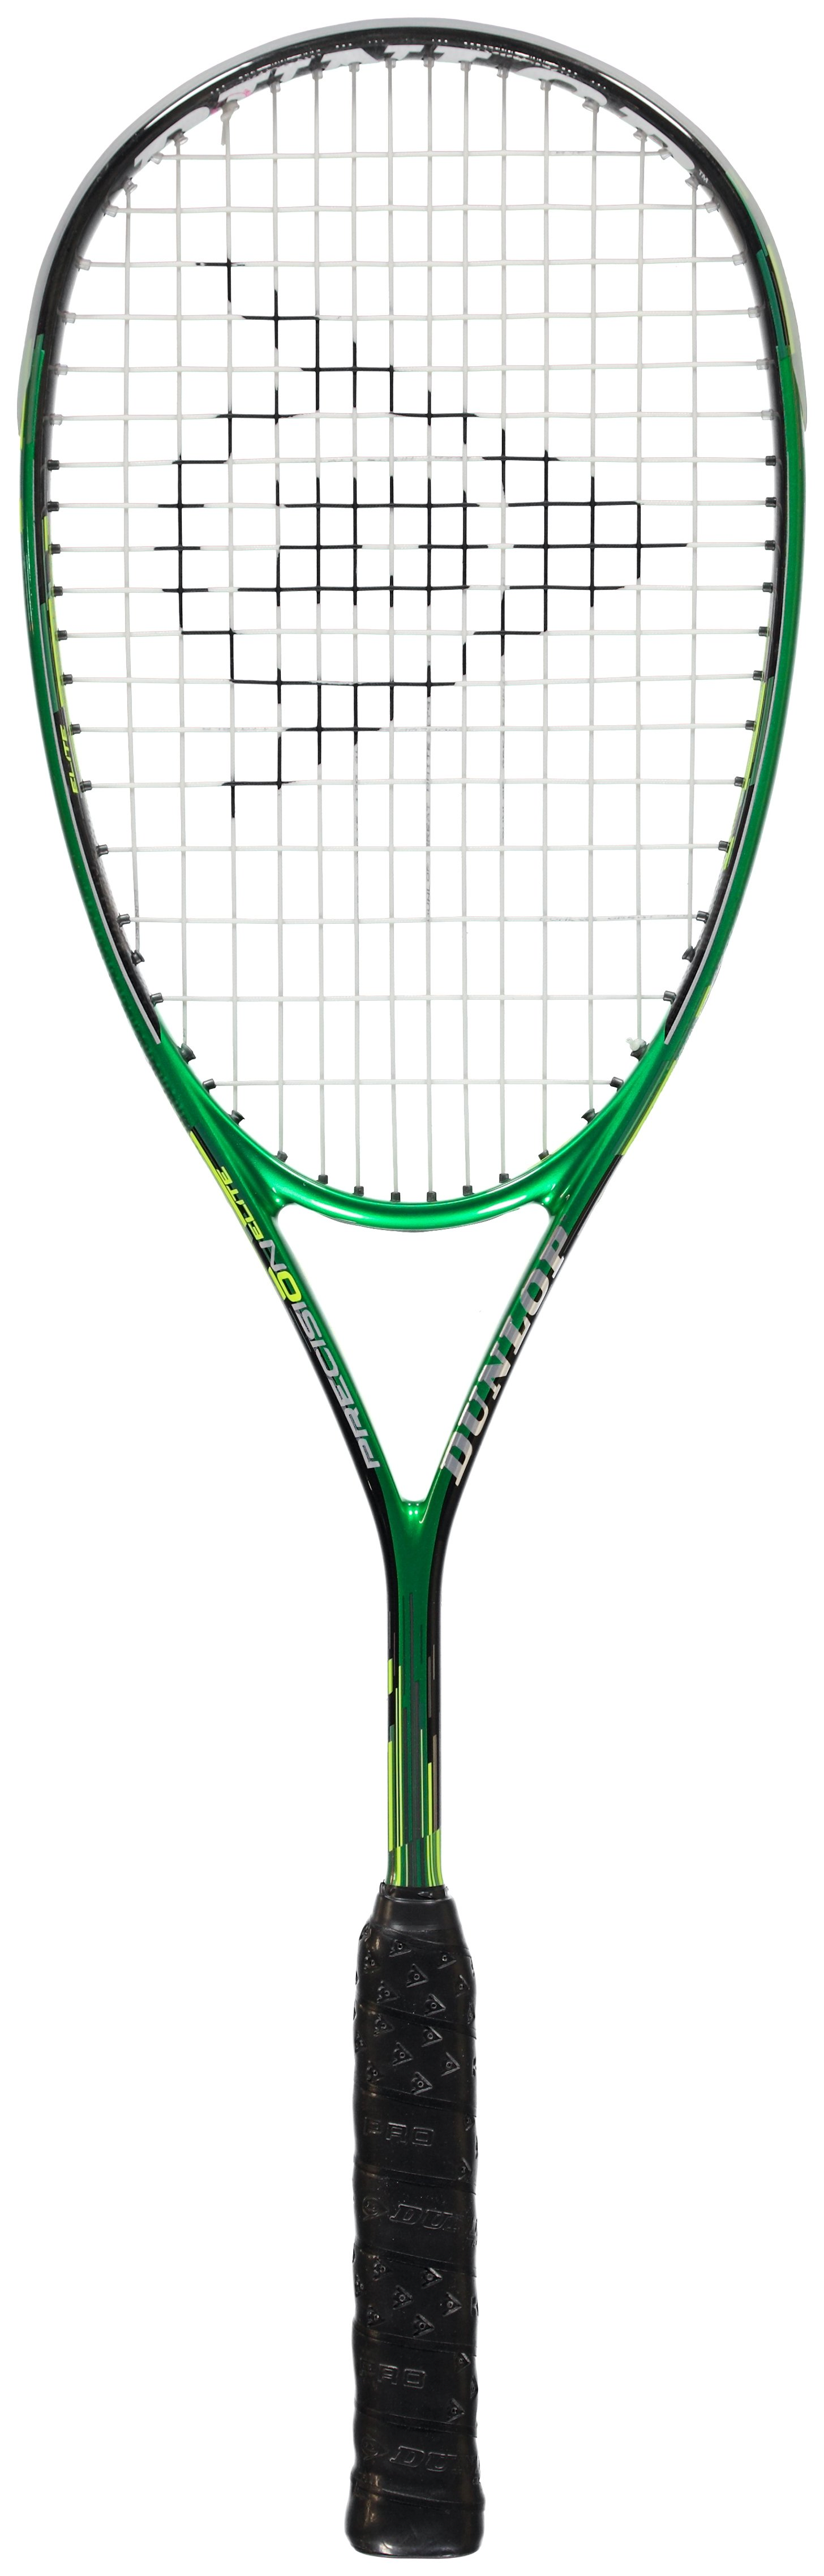 precision-elite-squash-racket